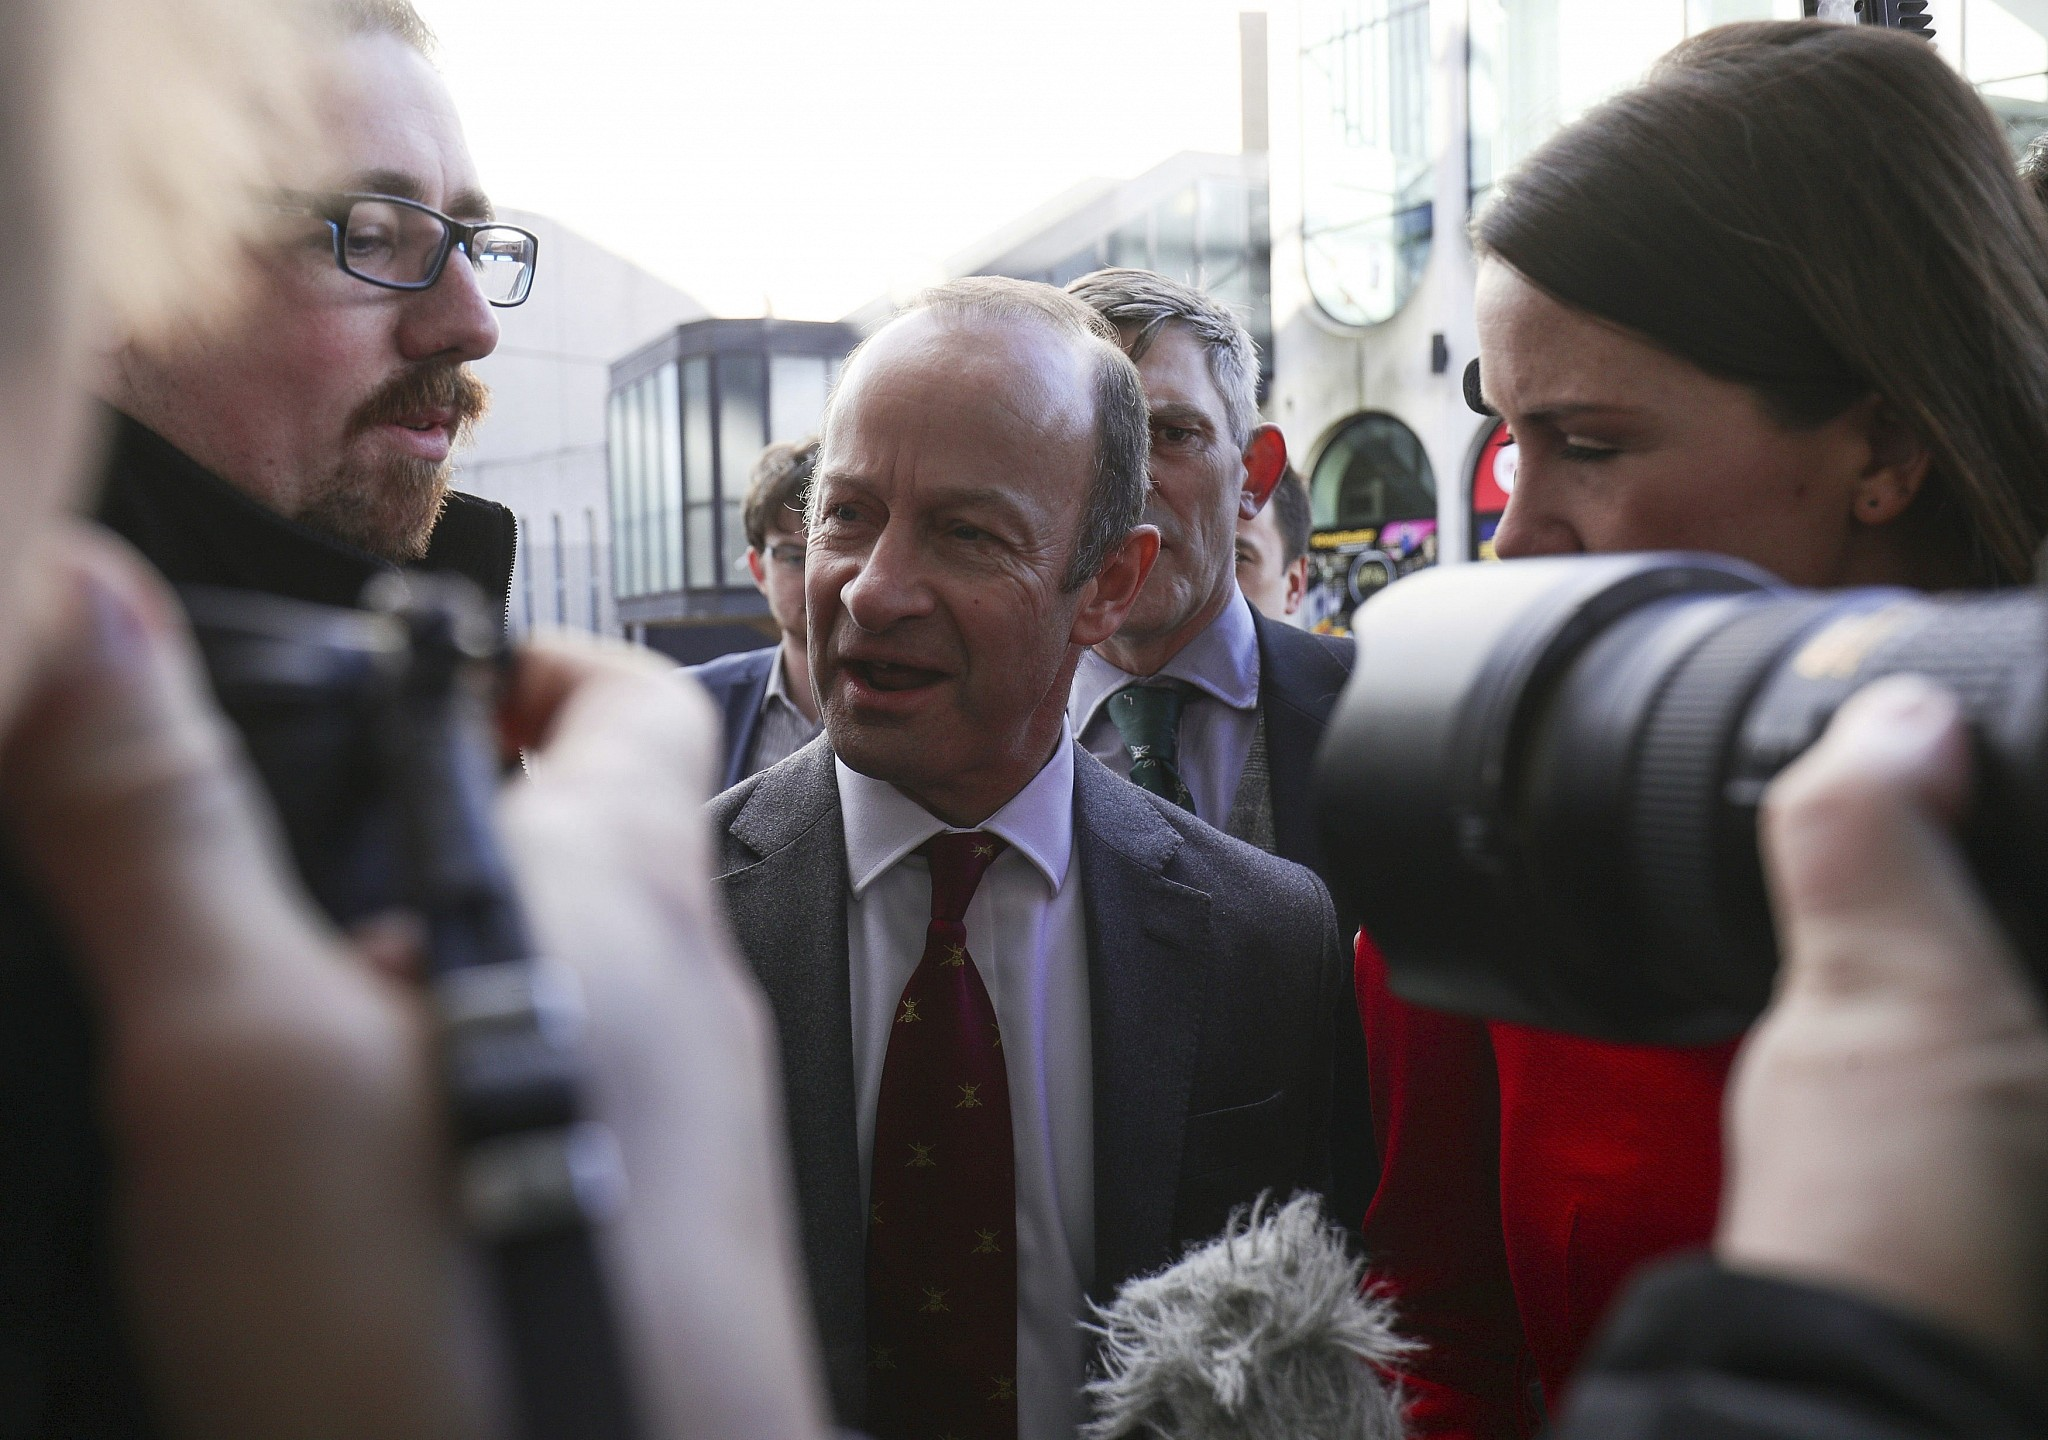 British euroskeptic party UKIP removes leader Henry Bolton